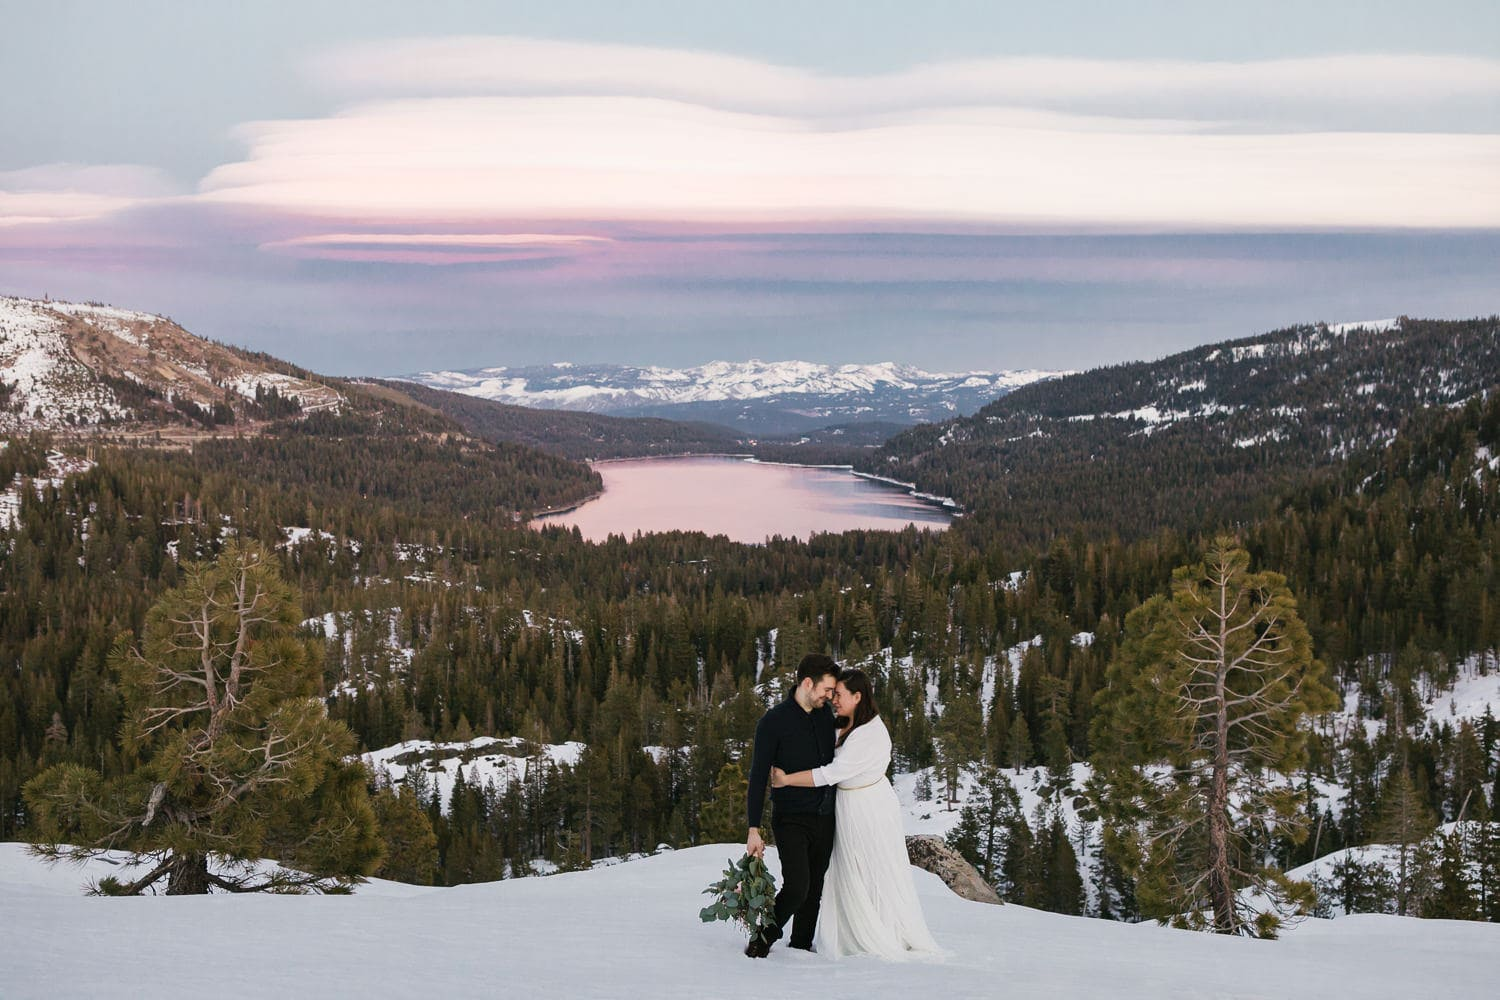 couple in snow on a mountain top